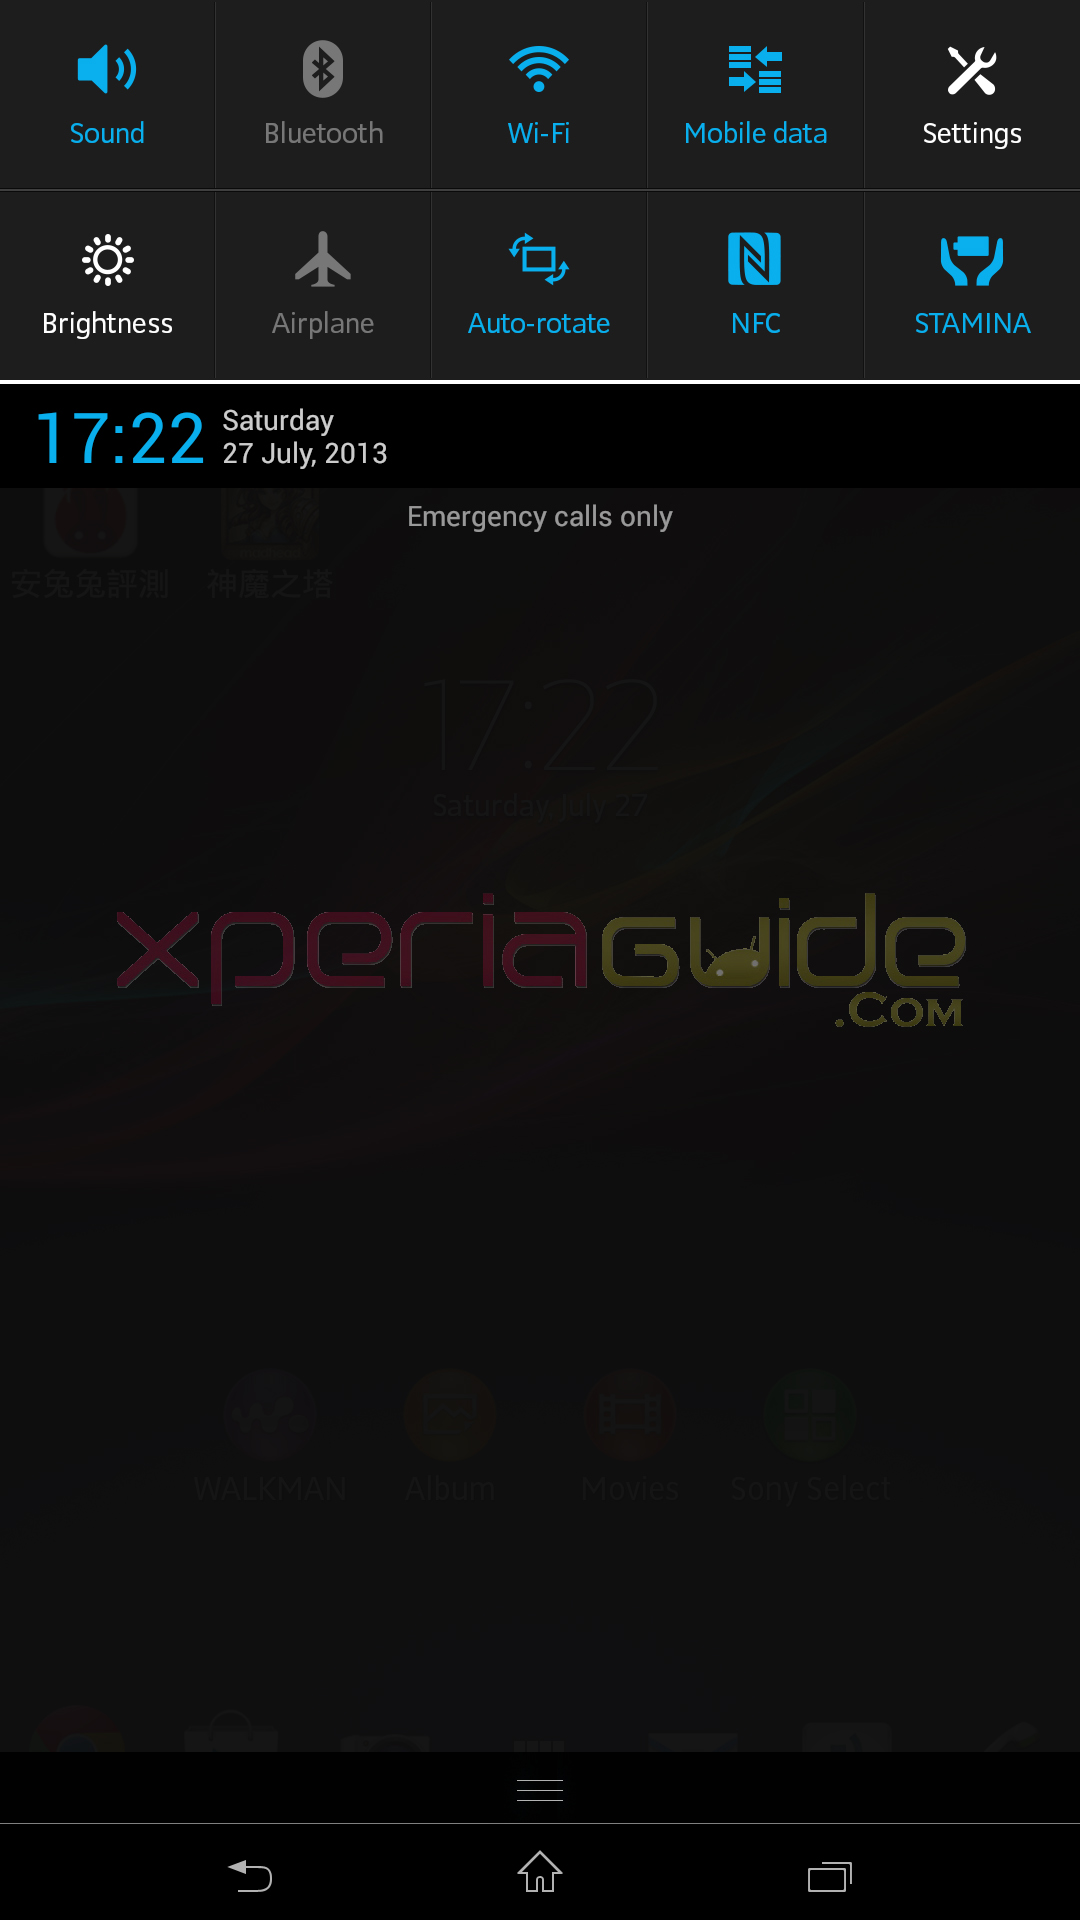 Notification panel of Xperia Z Ultra C6802 Android 4.2.2 14.1.B.0.461 firmware